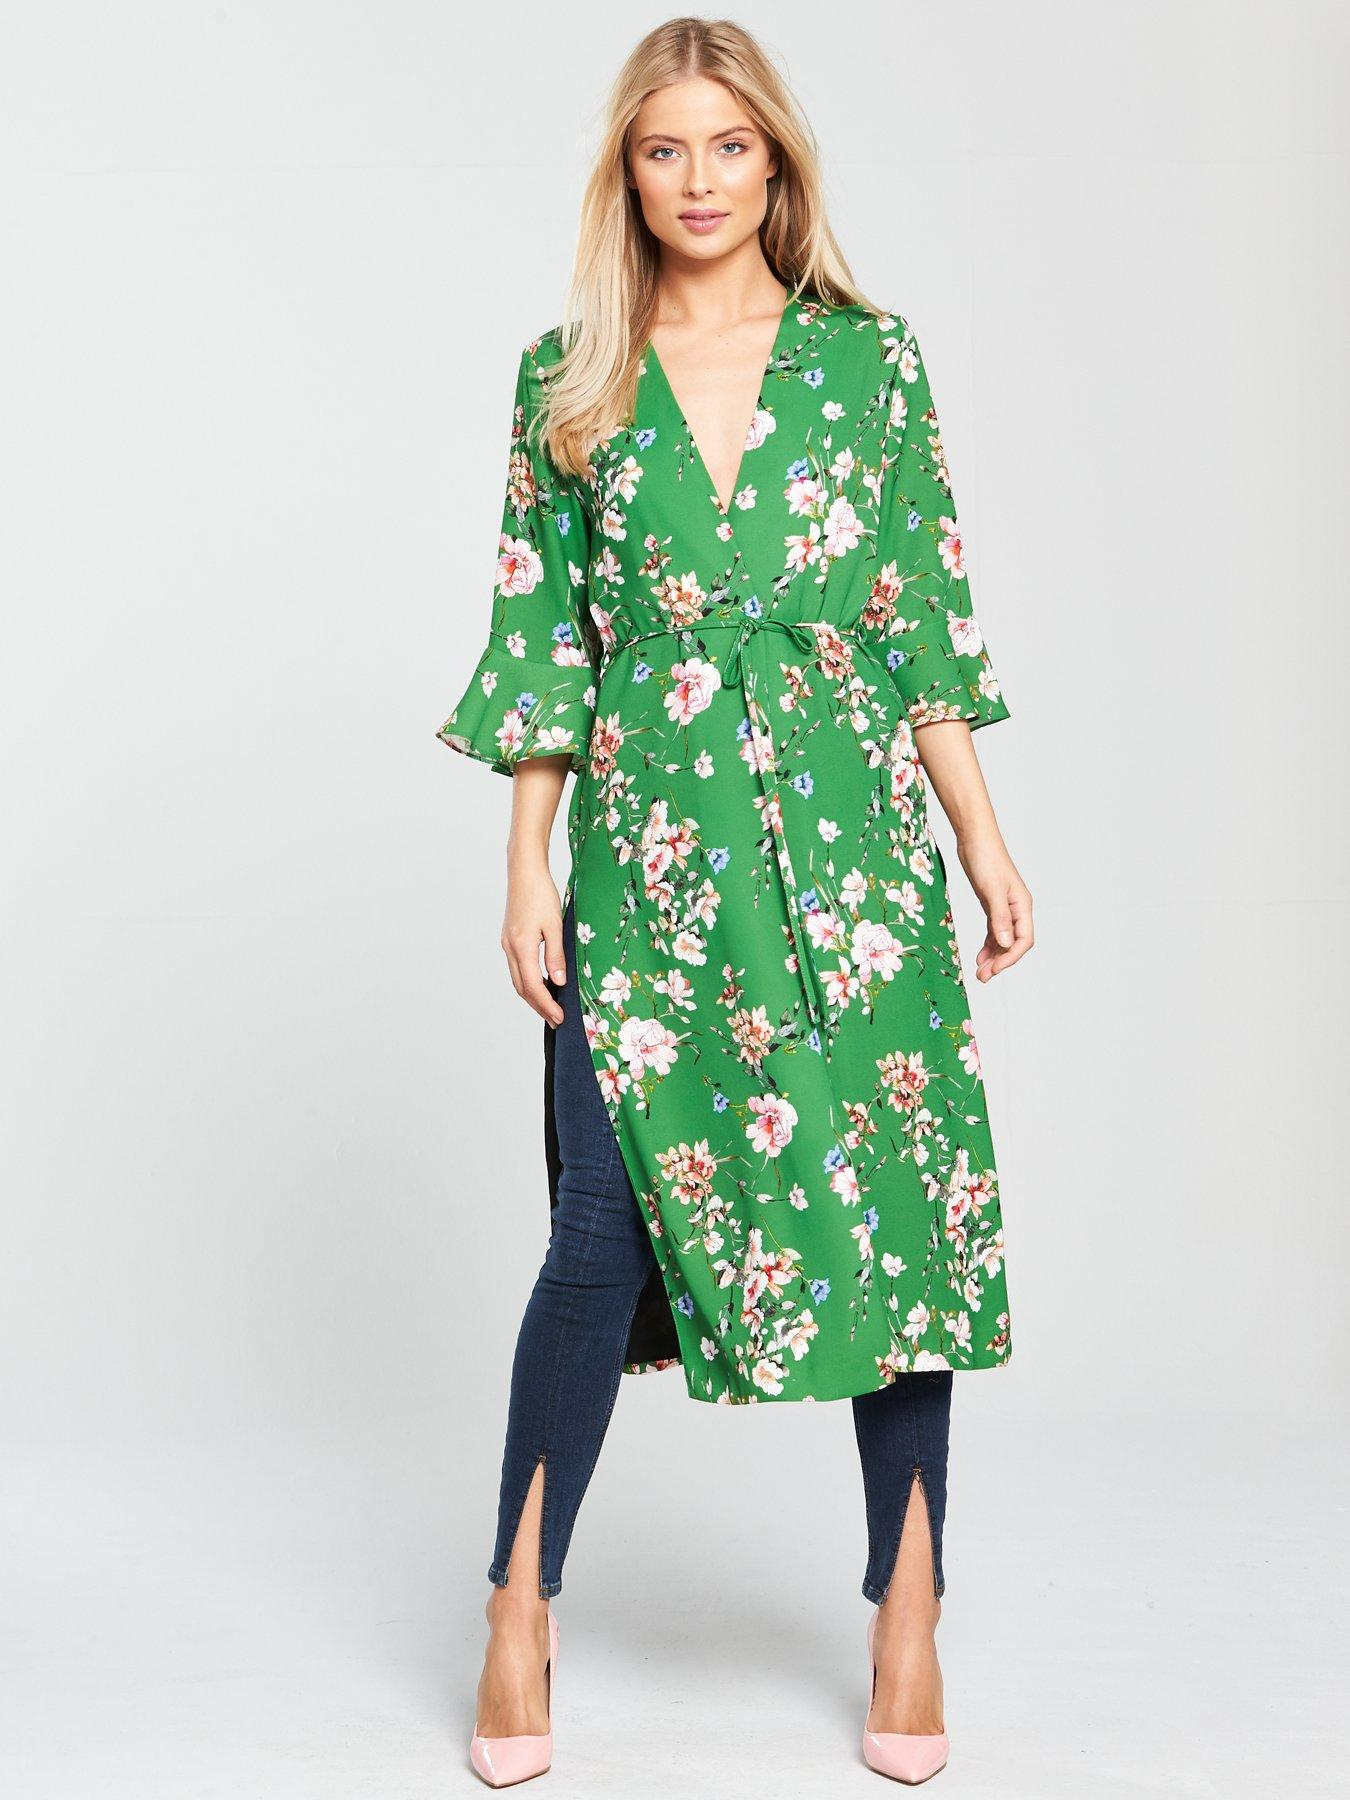 River island yellow floral embroidered coat dress